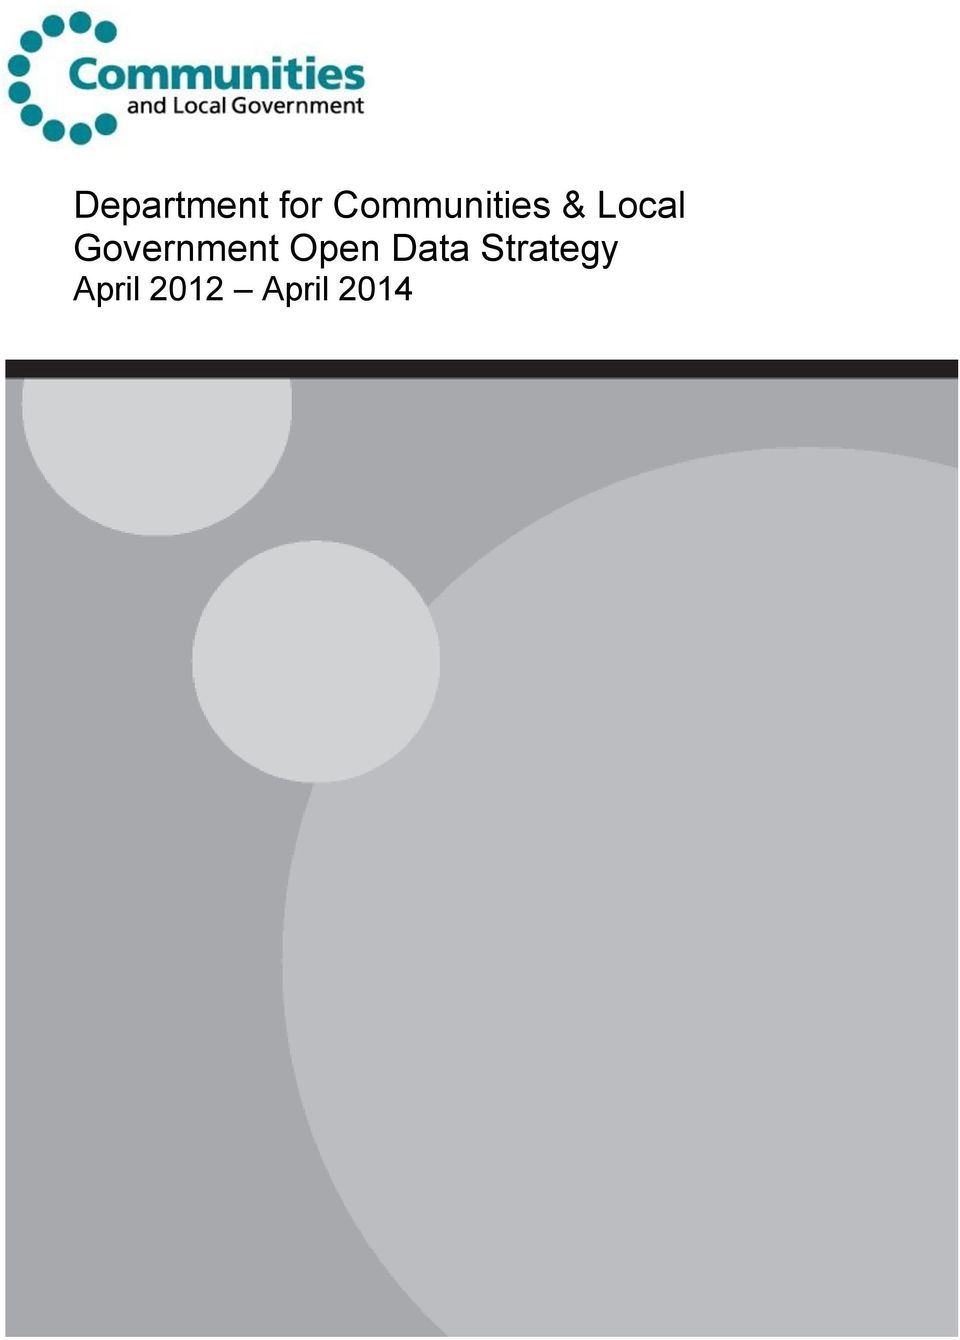 Government Open Data